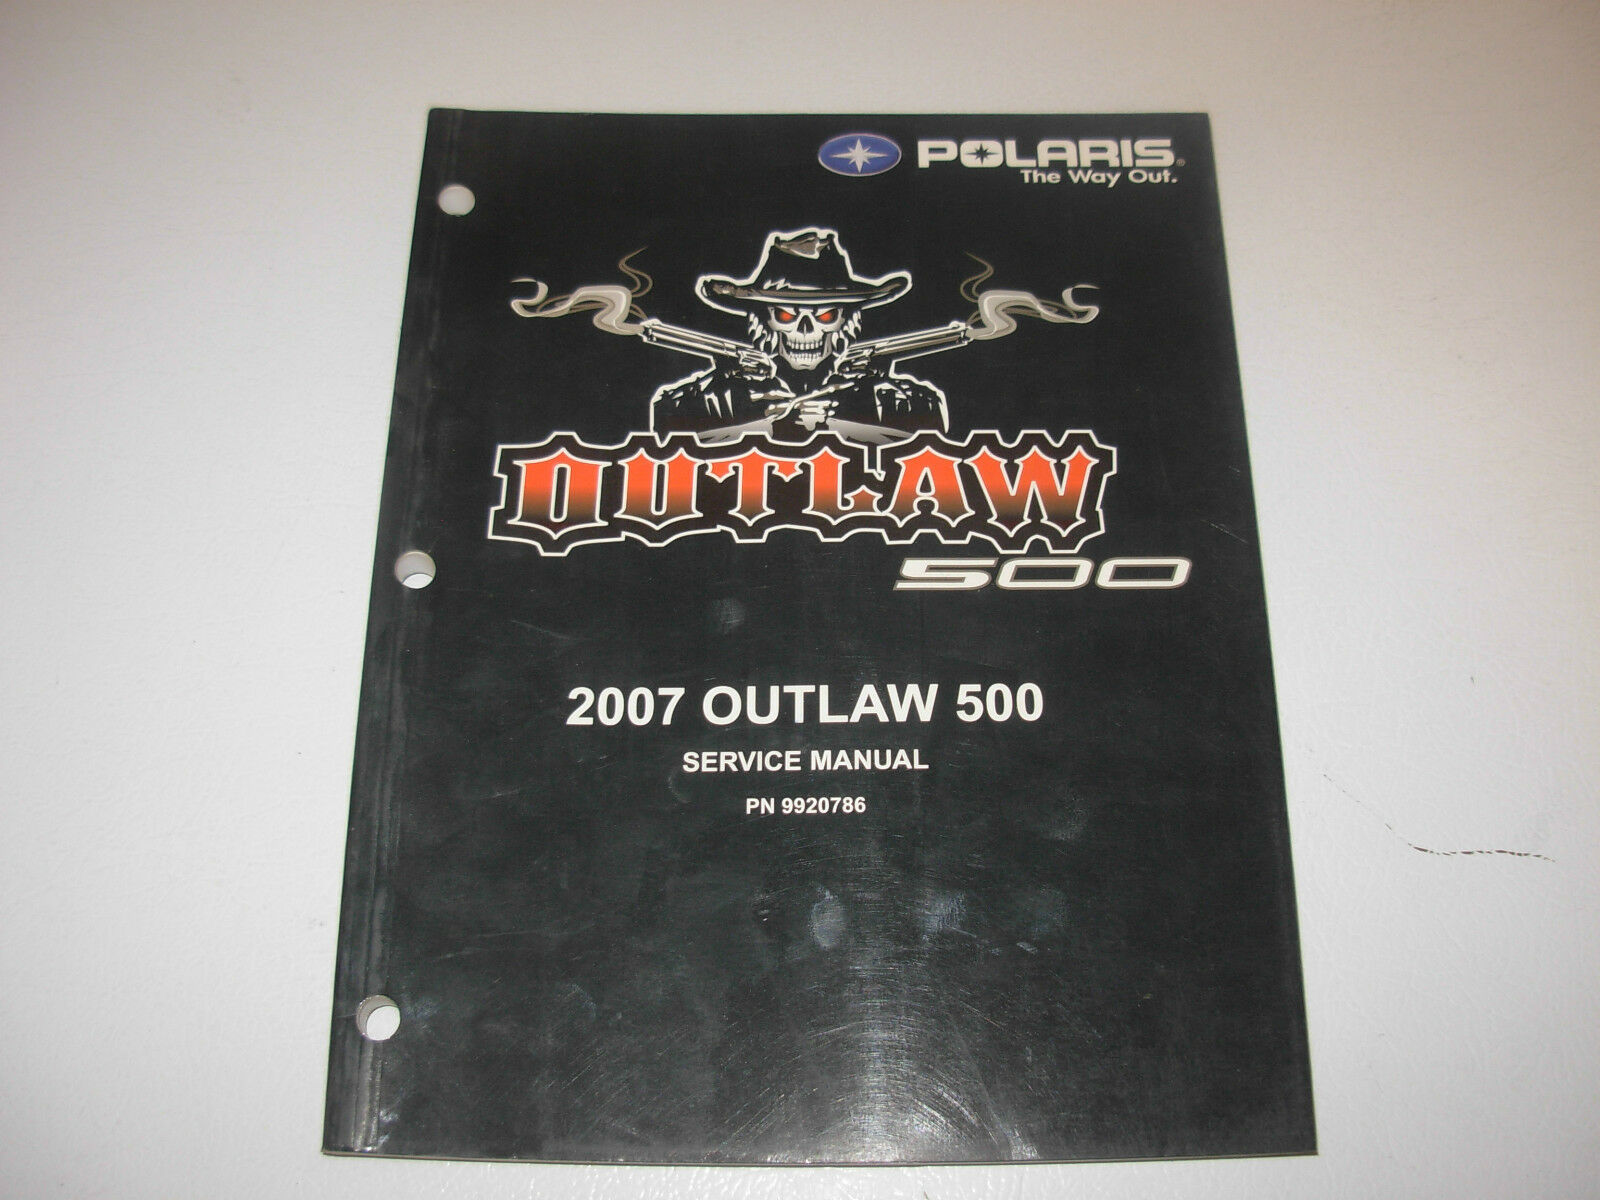 Outlaw Wiring Diagram Will Be A Thing Polaris 525 Audi Fuse Box Free Download Play App Co Vw Gti 90